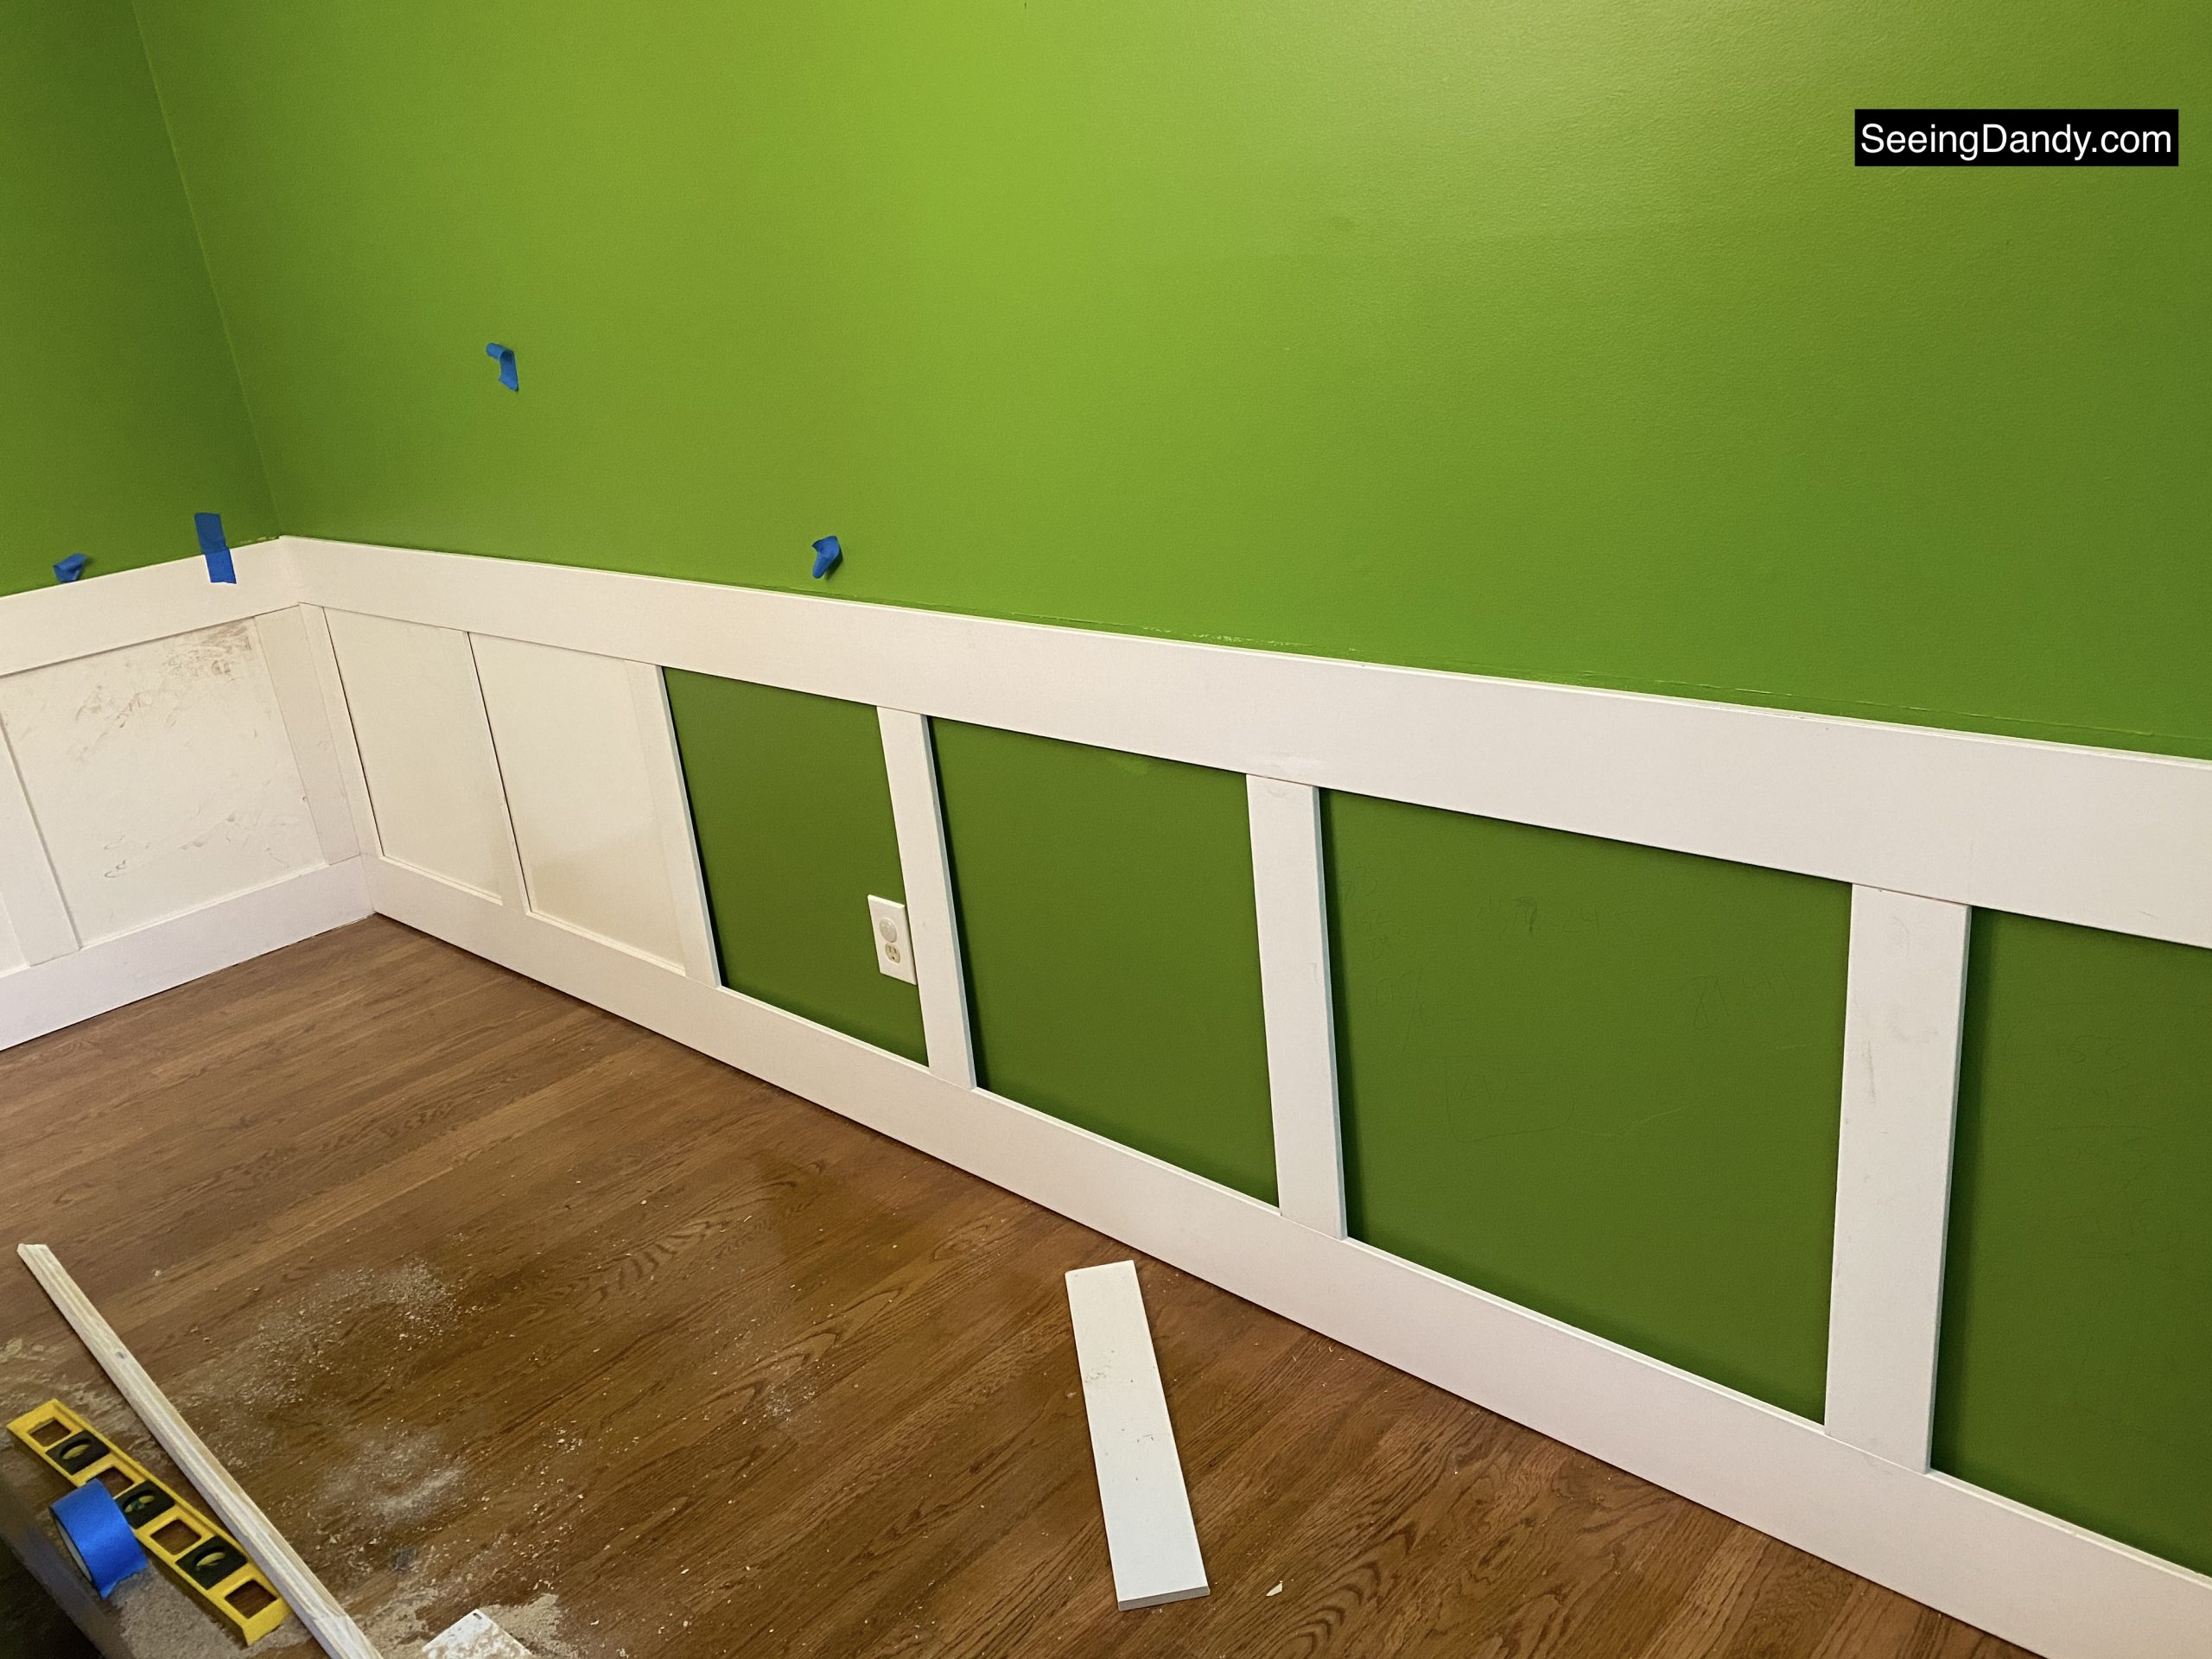 diy wainscoting, dining room wainscoting, kate spade green wall, behr paint, bold avocado green wall, square wainscoting, dining room decor, farmhouse style decorating, dining room hardwood floor